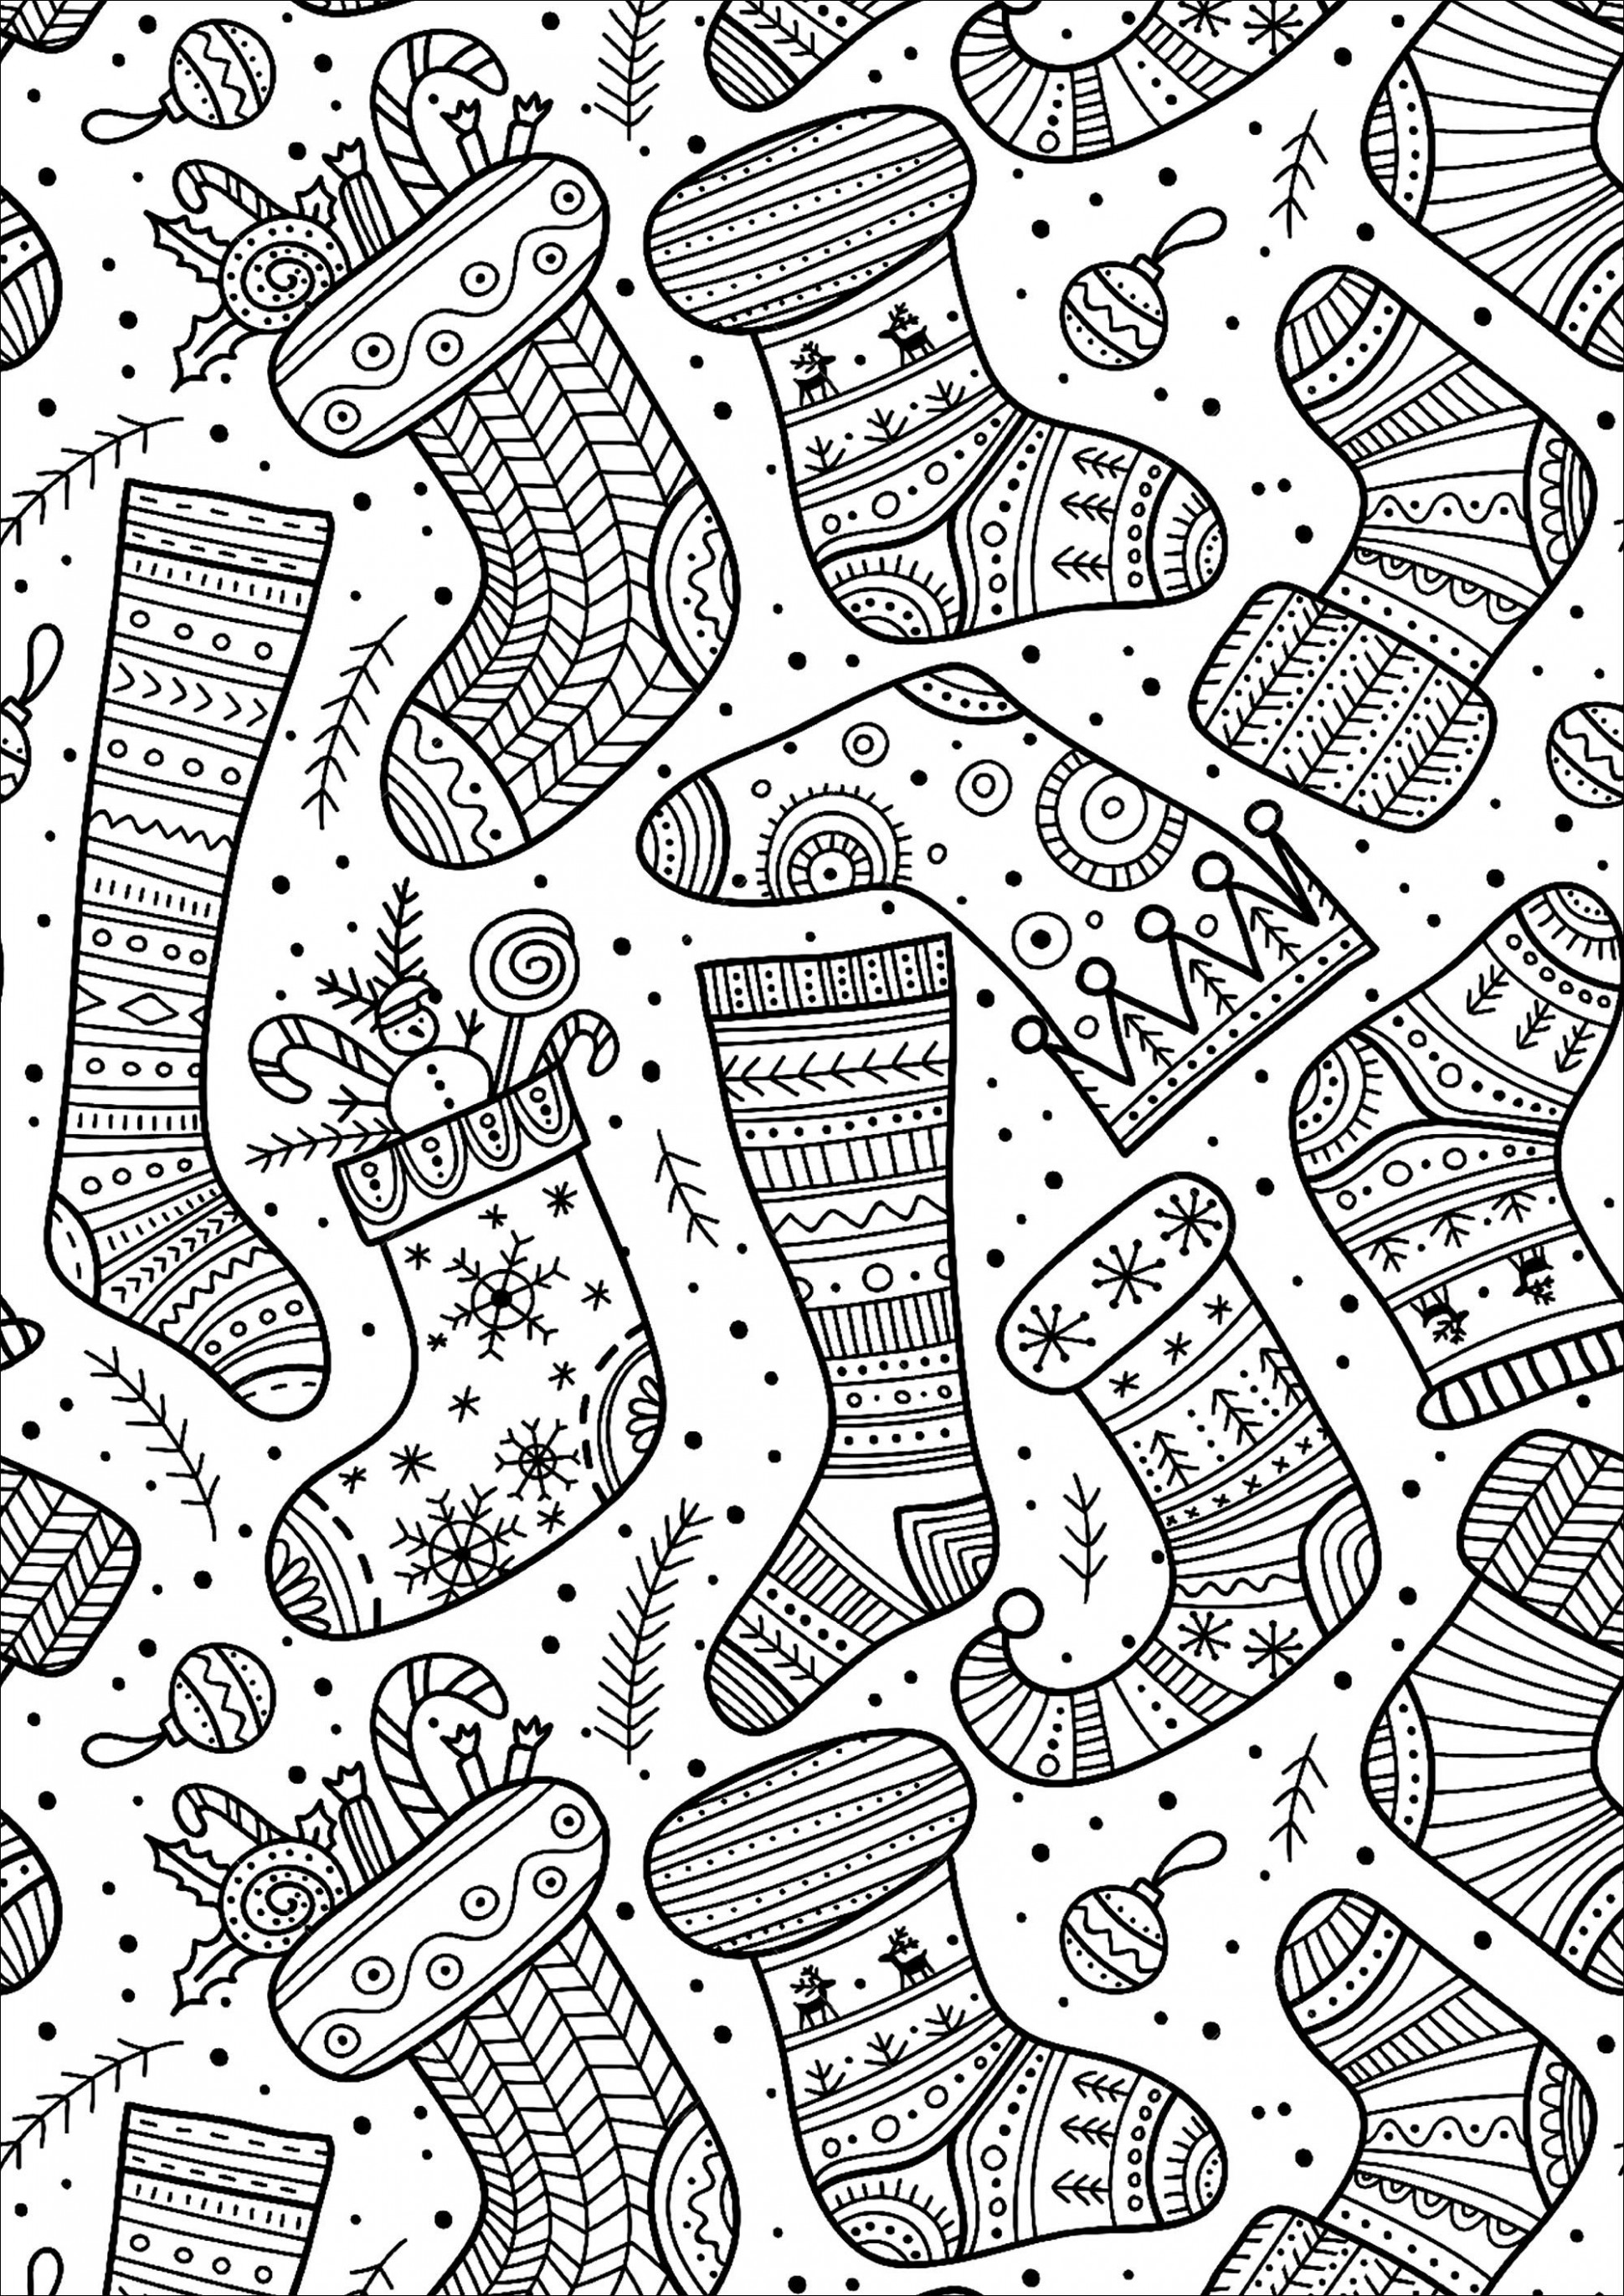 Cute Christmas socks with various and happy designs | Coloring pages ..